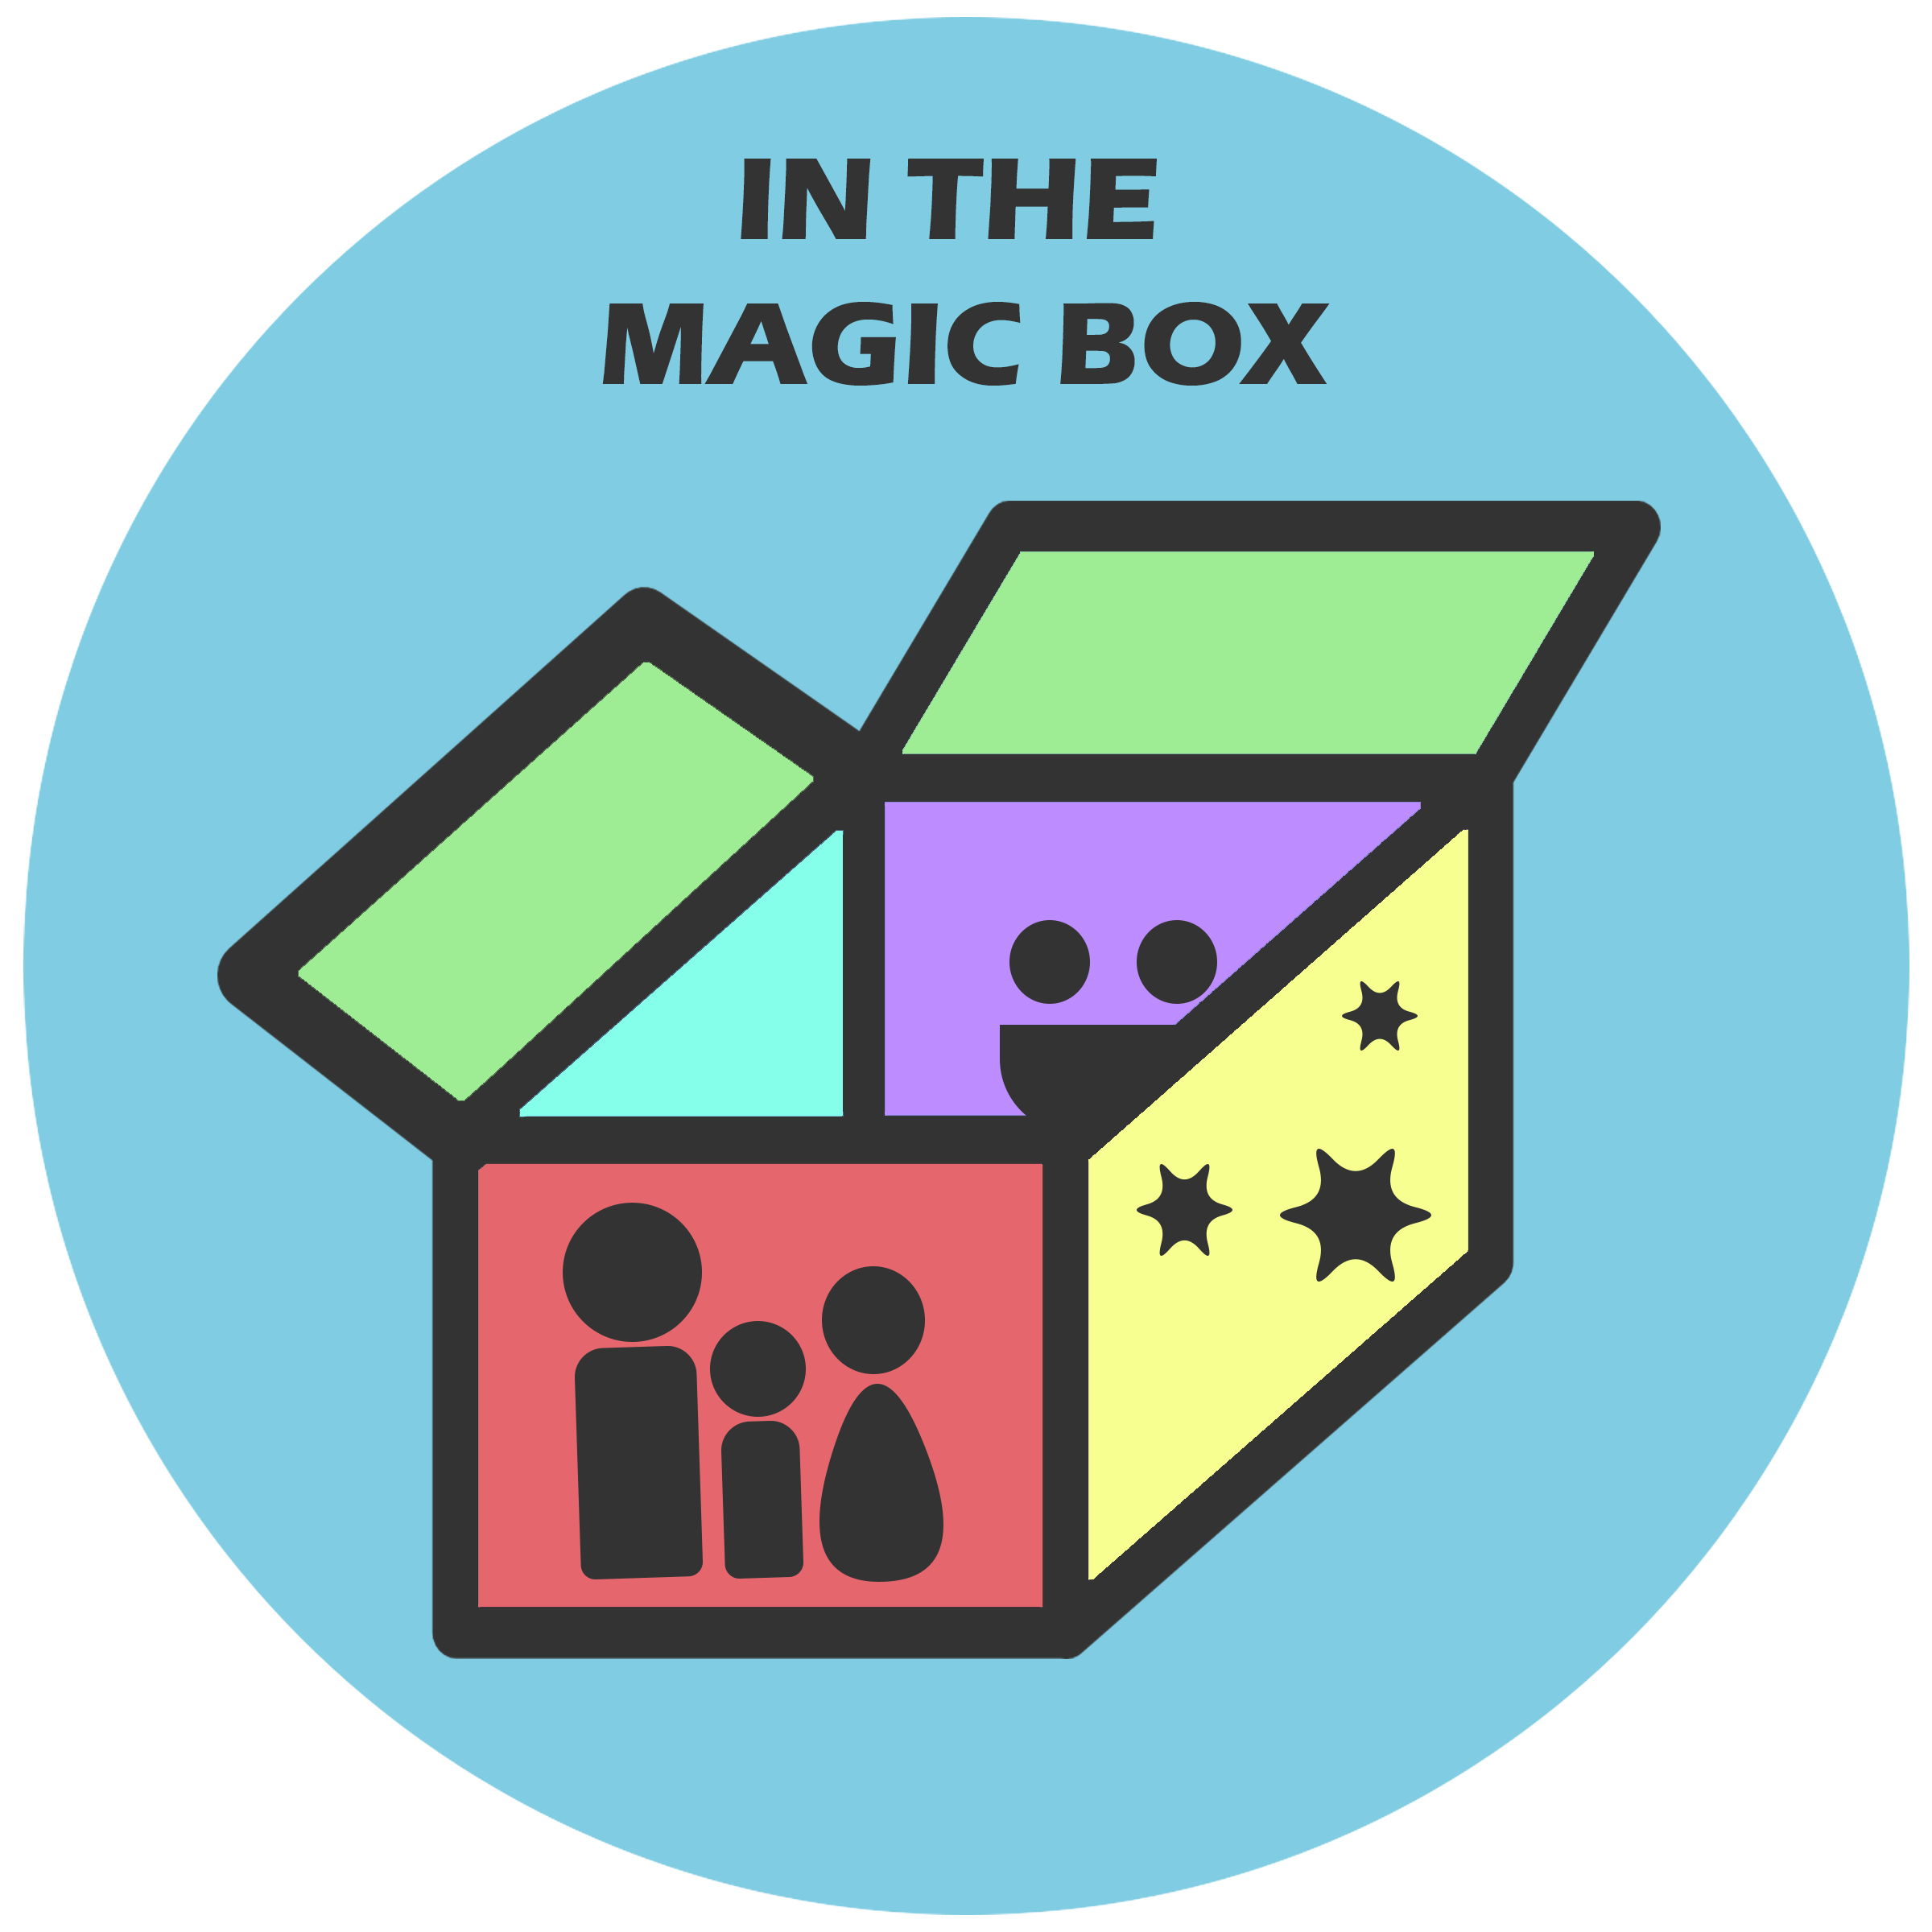 Magic clipart magic box. Home in the